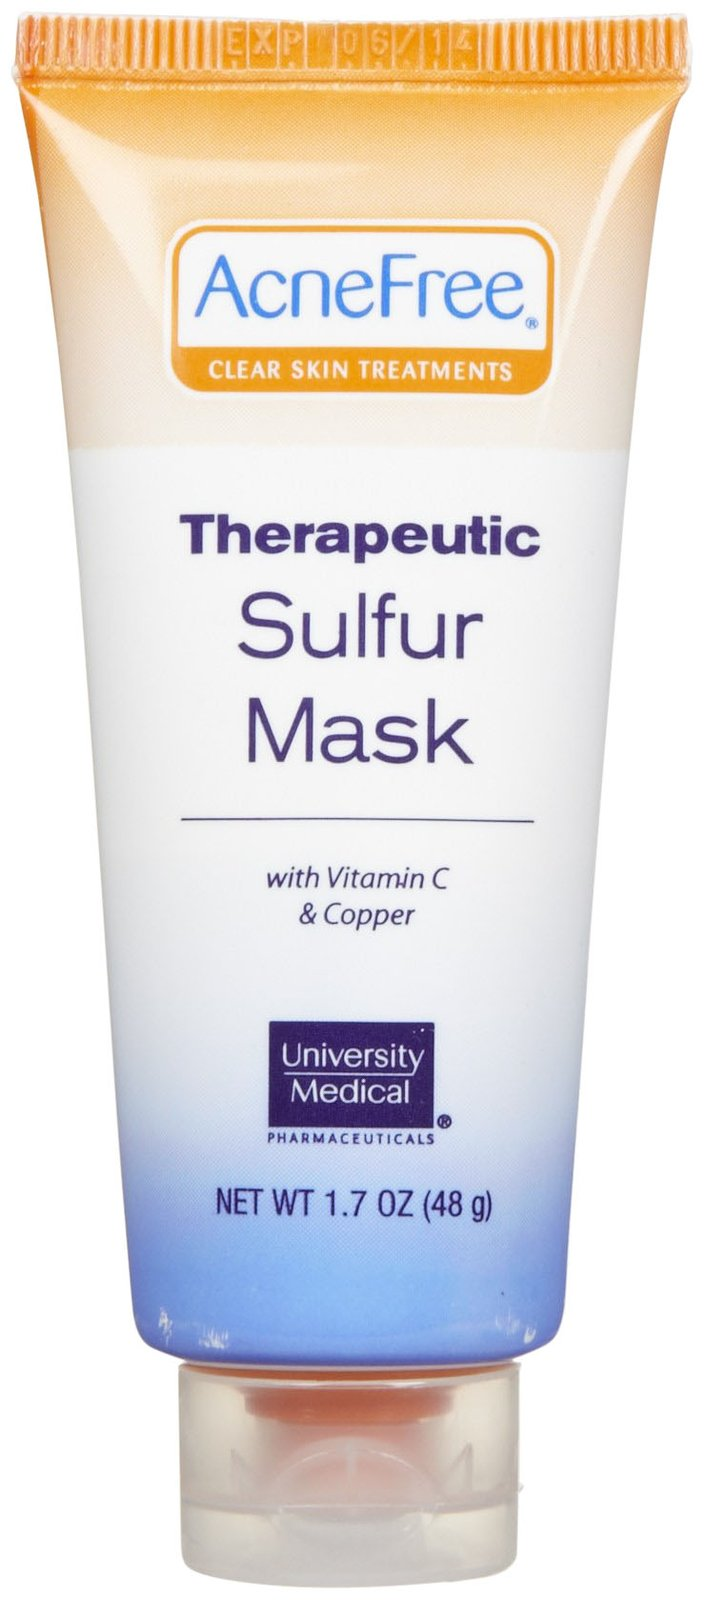 AcneFree Therapeutic Sulfur Mask 1.7 oz.